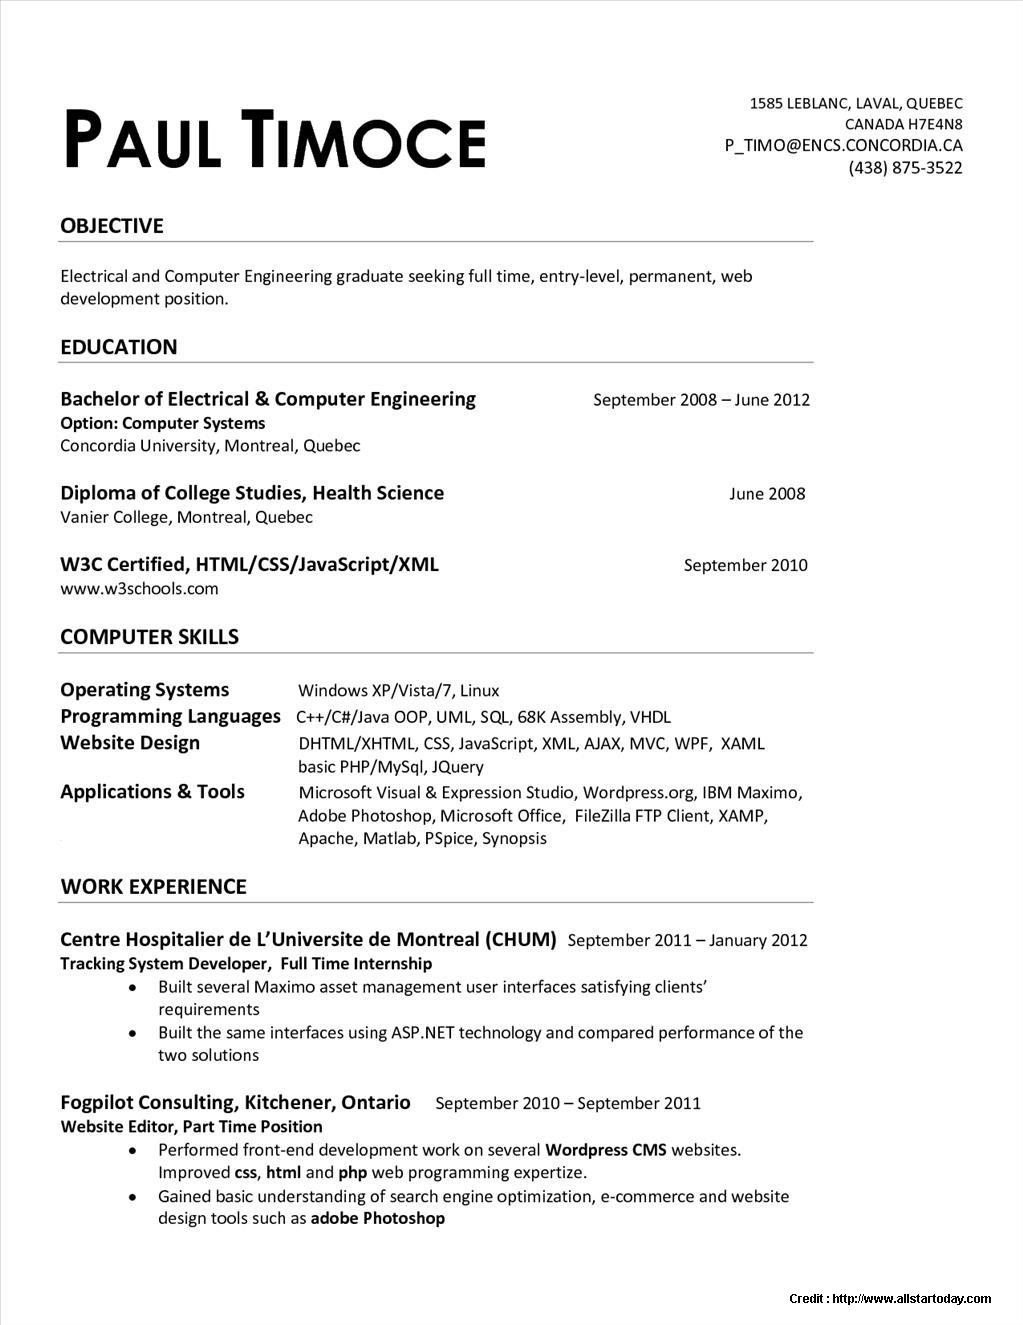 entry level mechanical engineering resume sample toyota builder law school template word Resume Entry Level Mechanical Engineering Resume